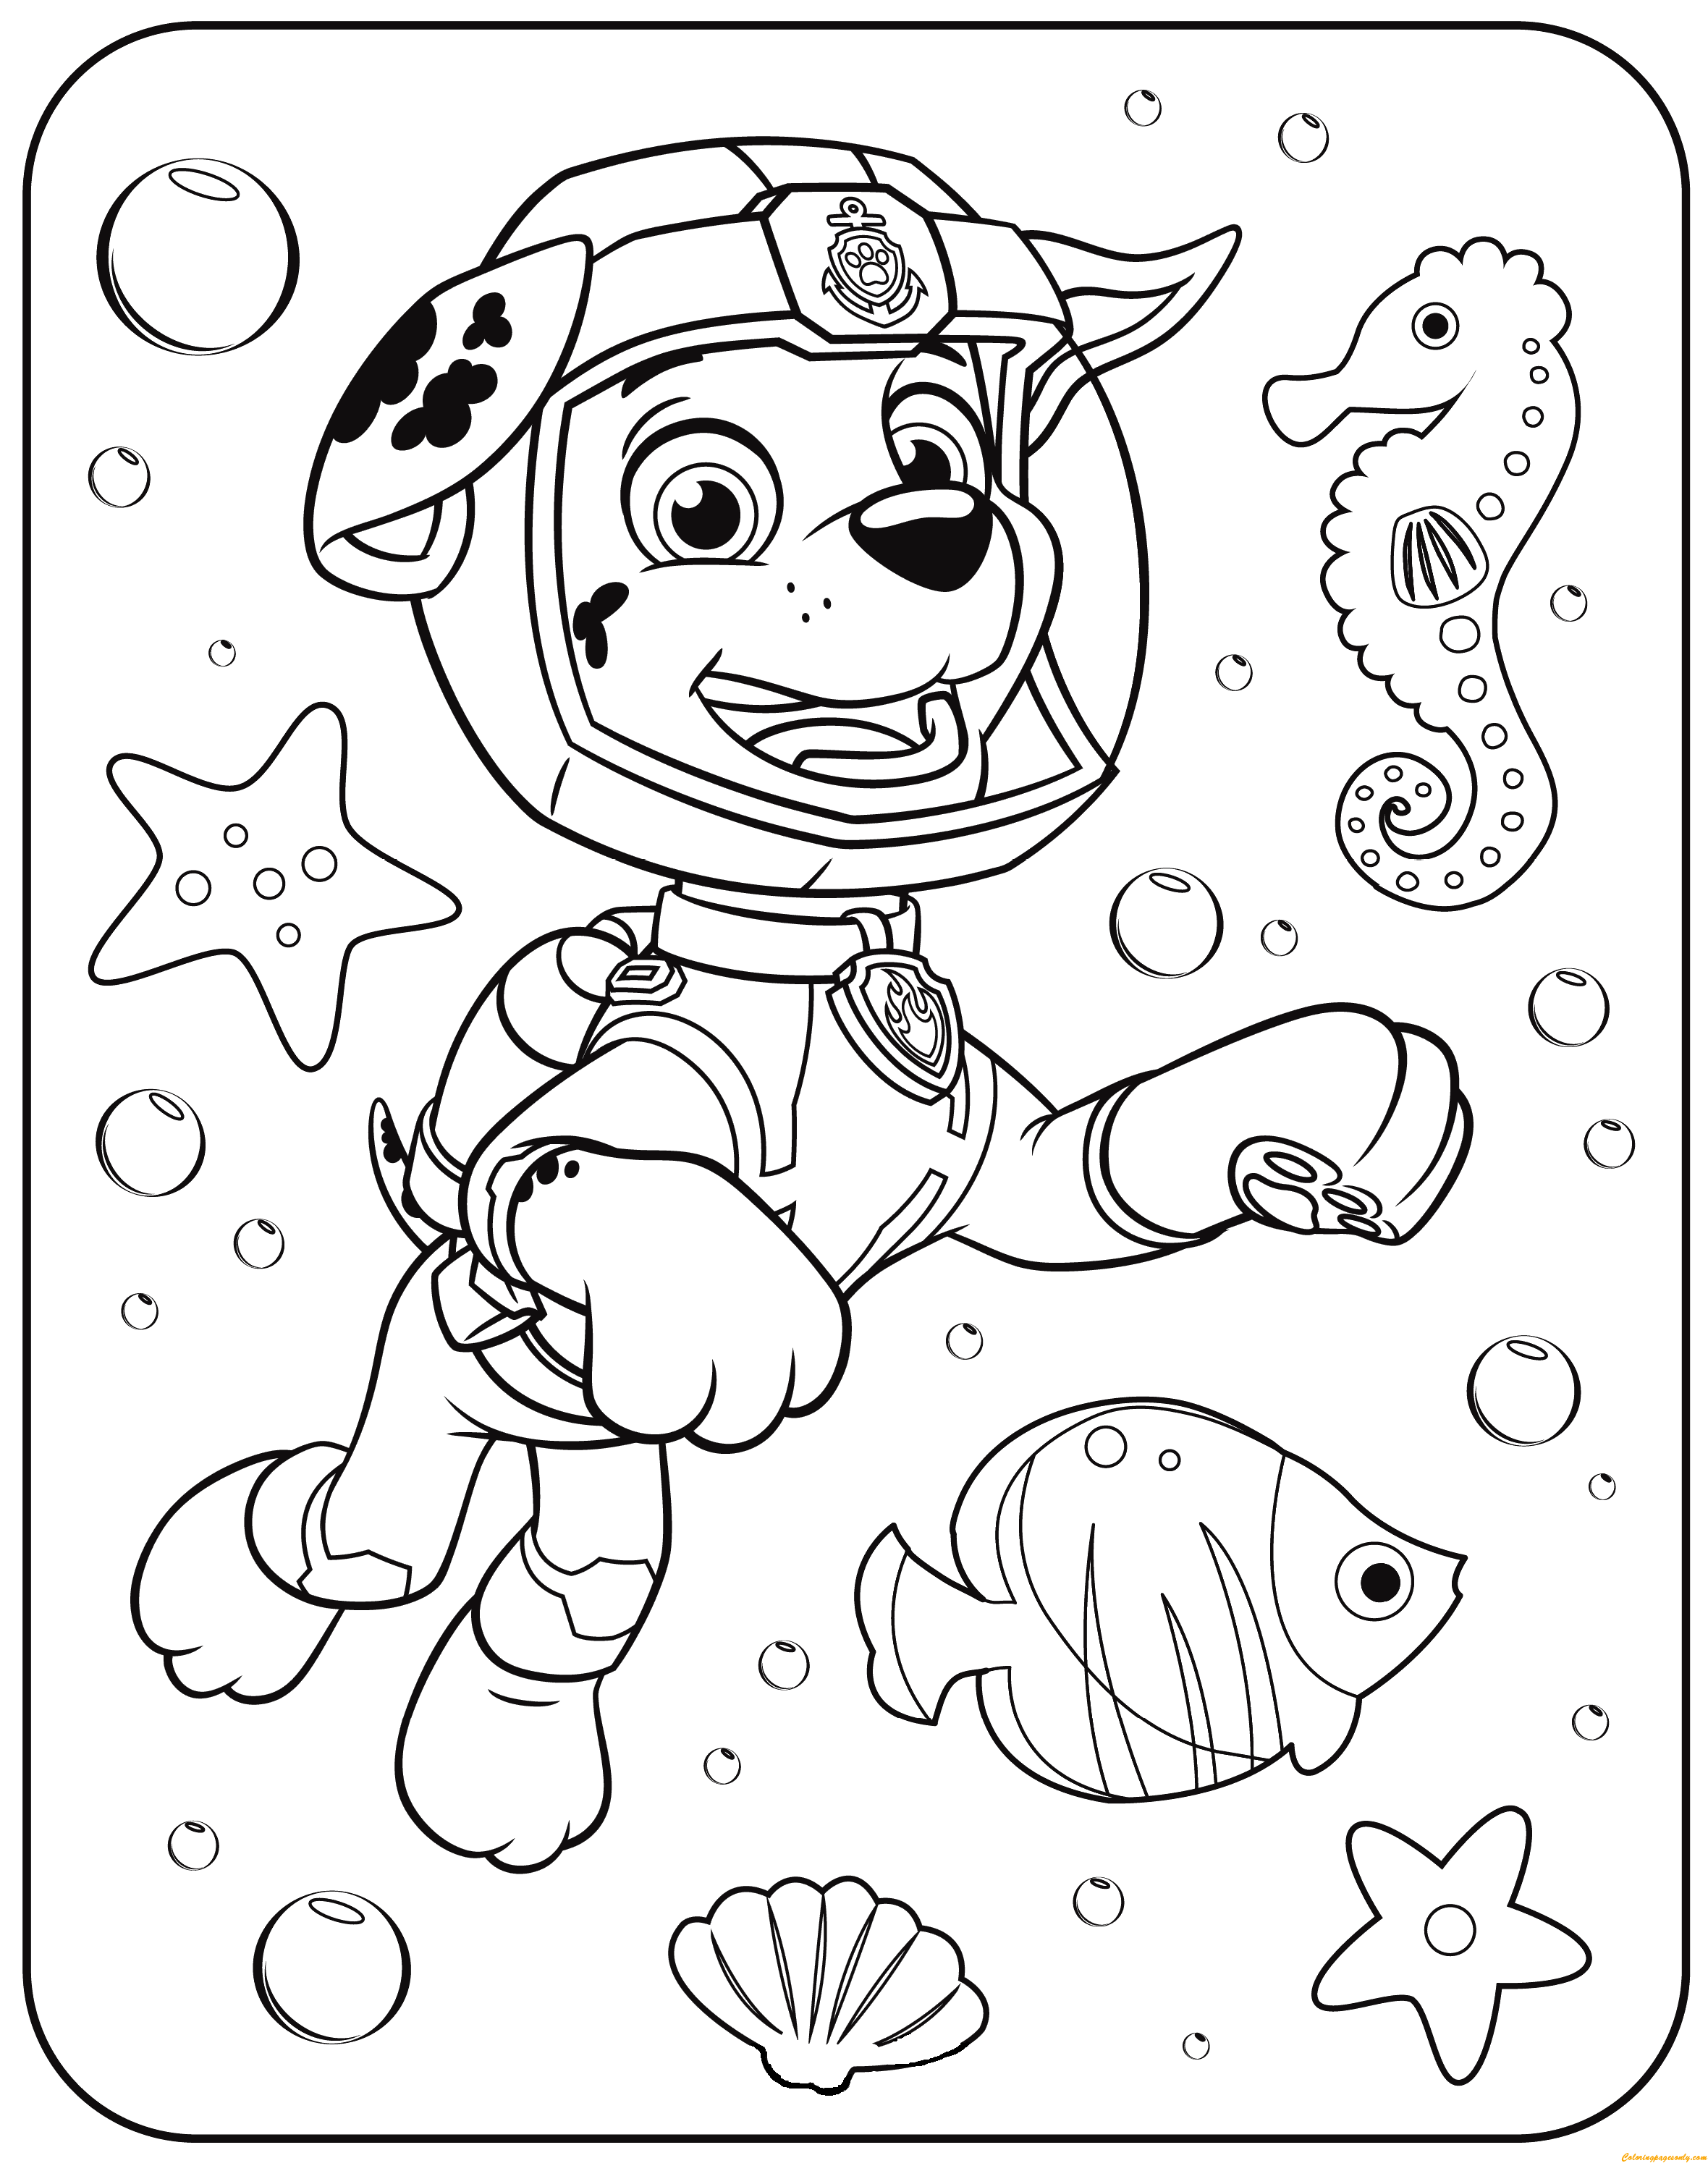 rescue dog coloring pages paw patrol marshall underwater coloring page free rescue pages coloring dog